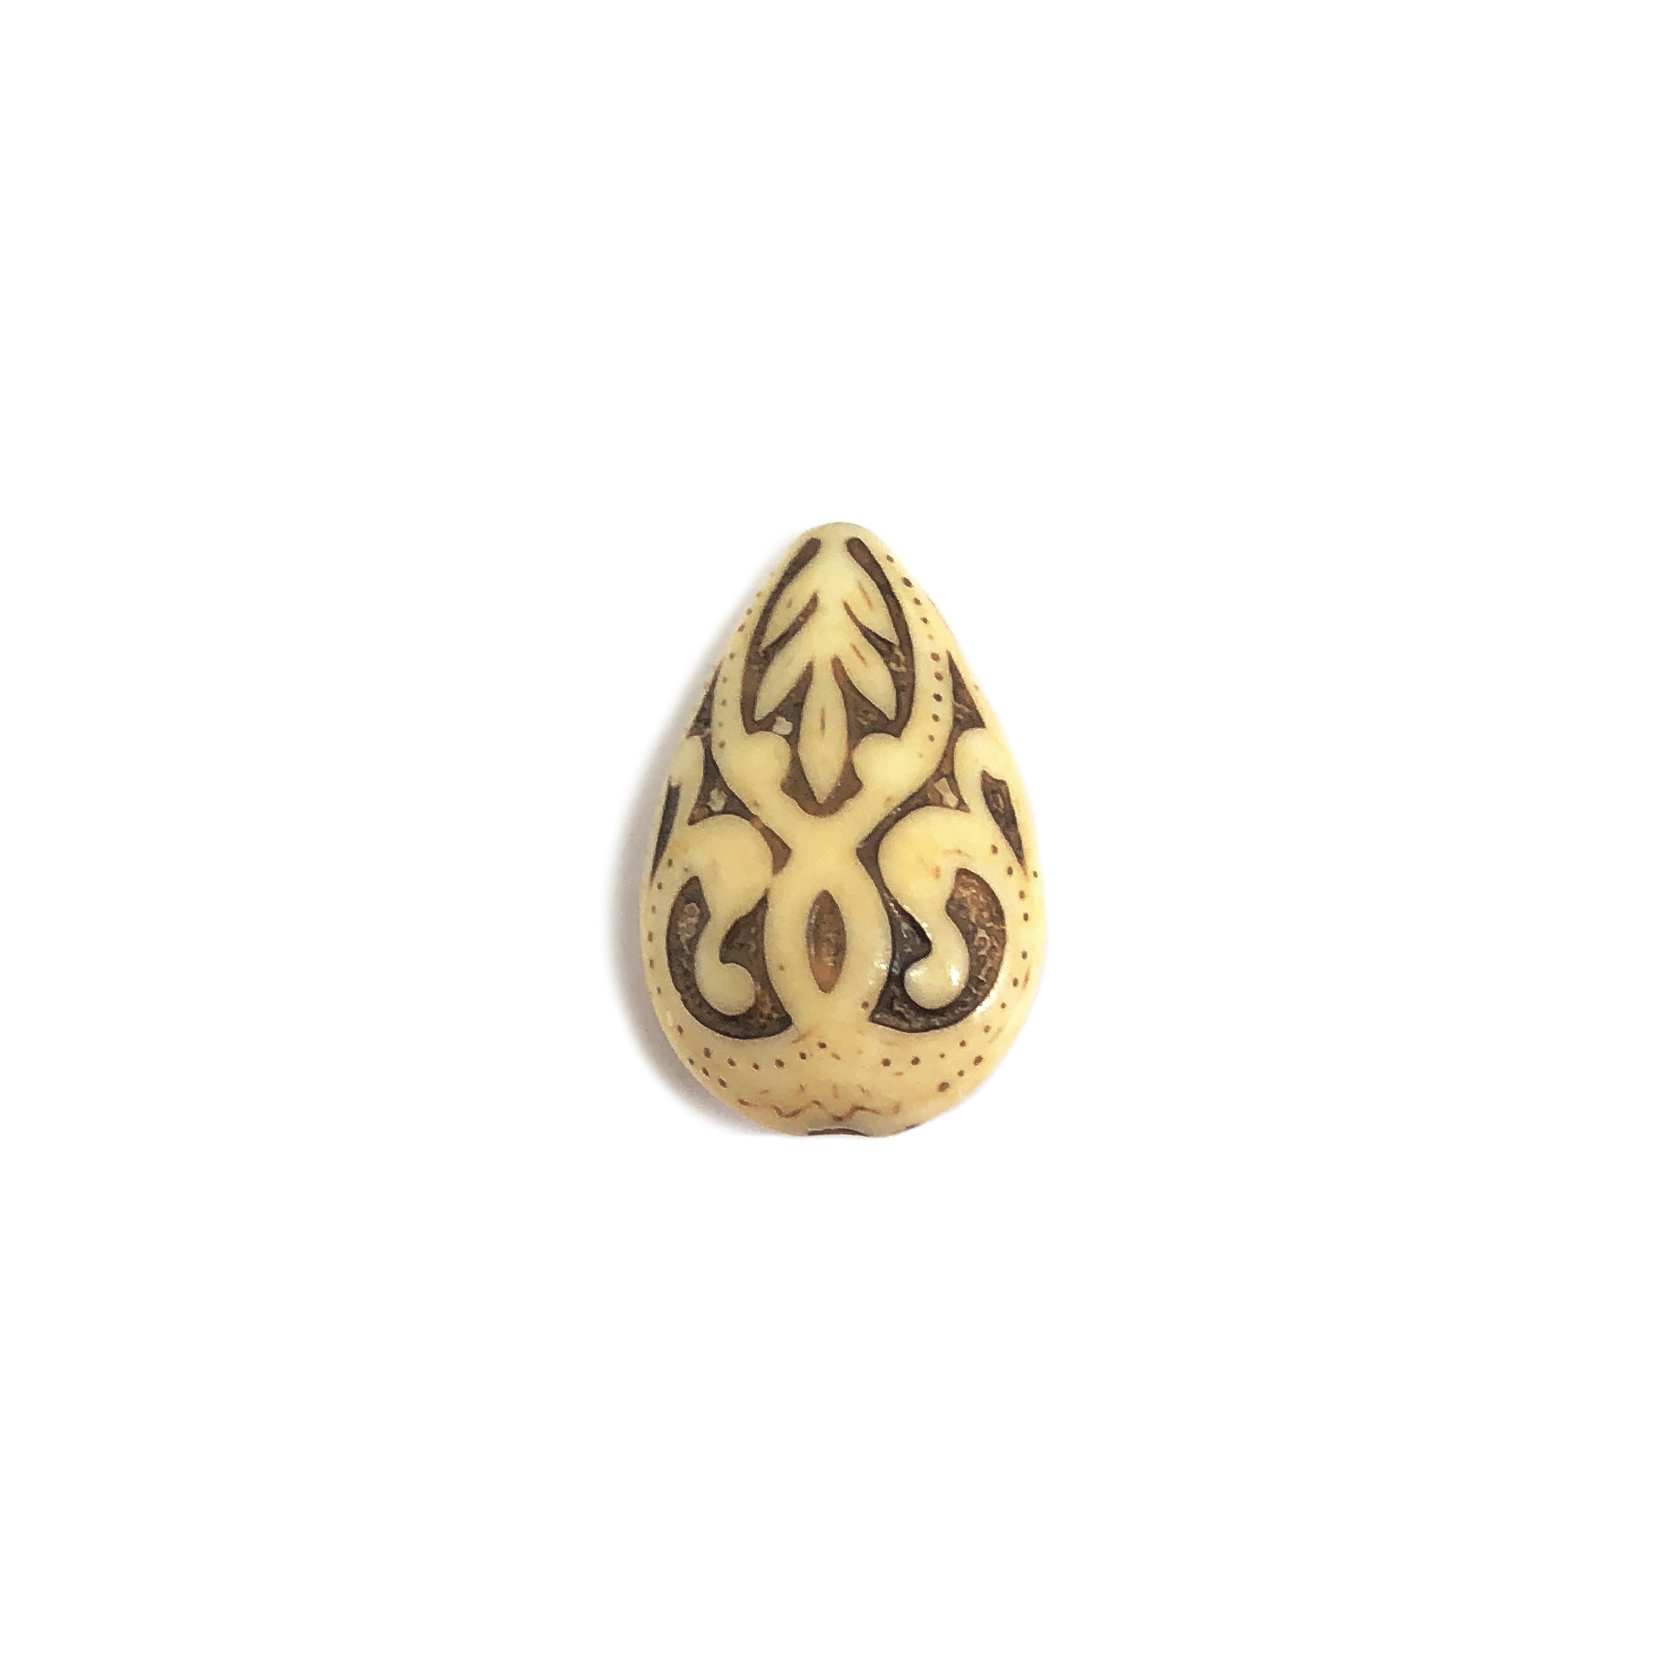 mocha ivory teardrop bead, acrylic beads, Victorian beads, ivory, mocha accents, bead, teardrop bead, mocha ivory, jewelry making, vintage supplies, jewelry supplies, B'sue Boutiques, US made, 19x13mm, 04590